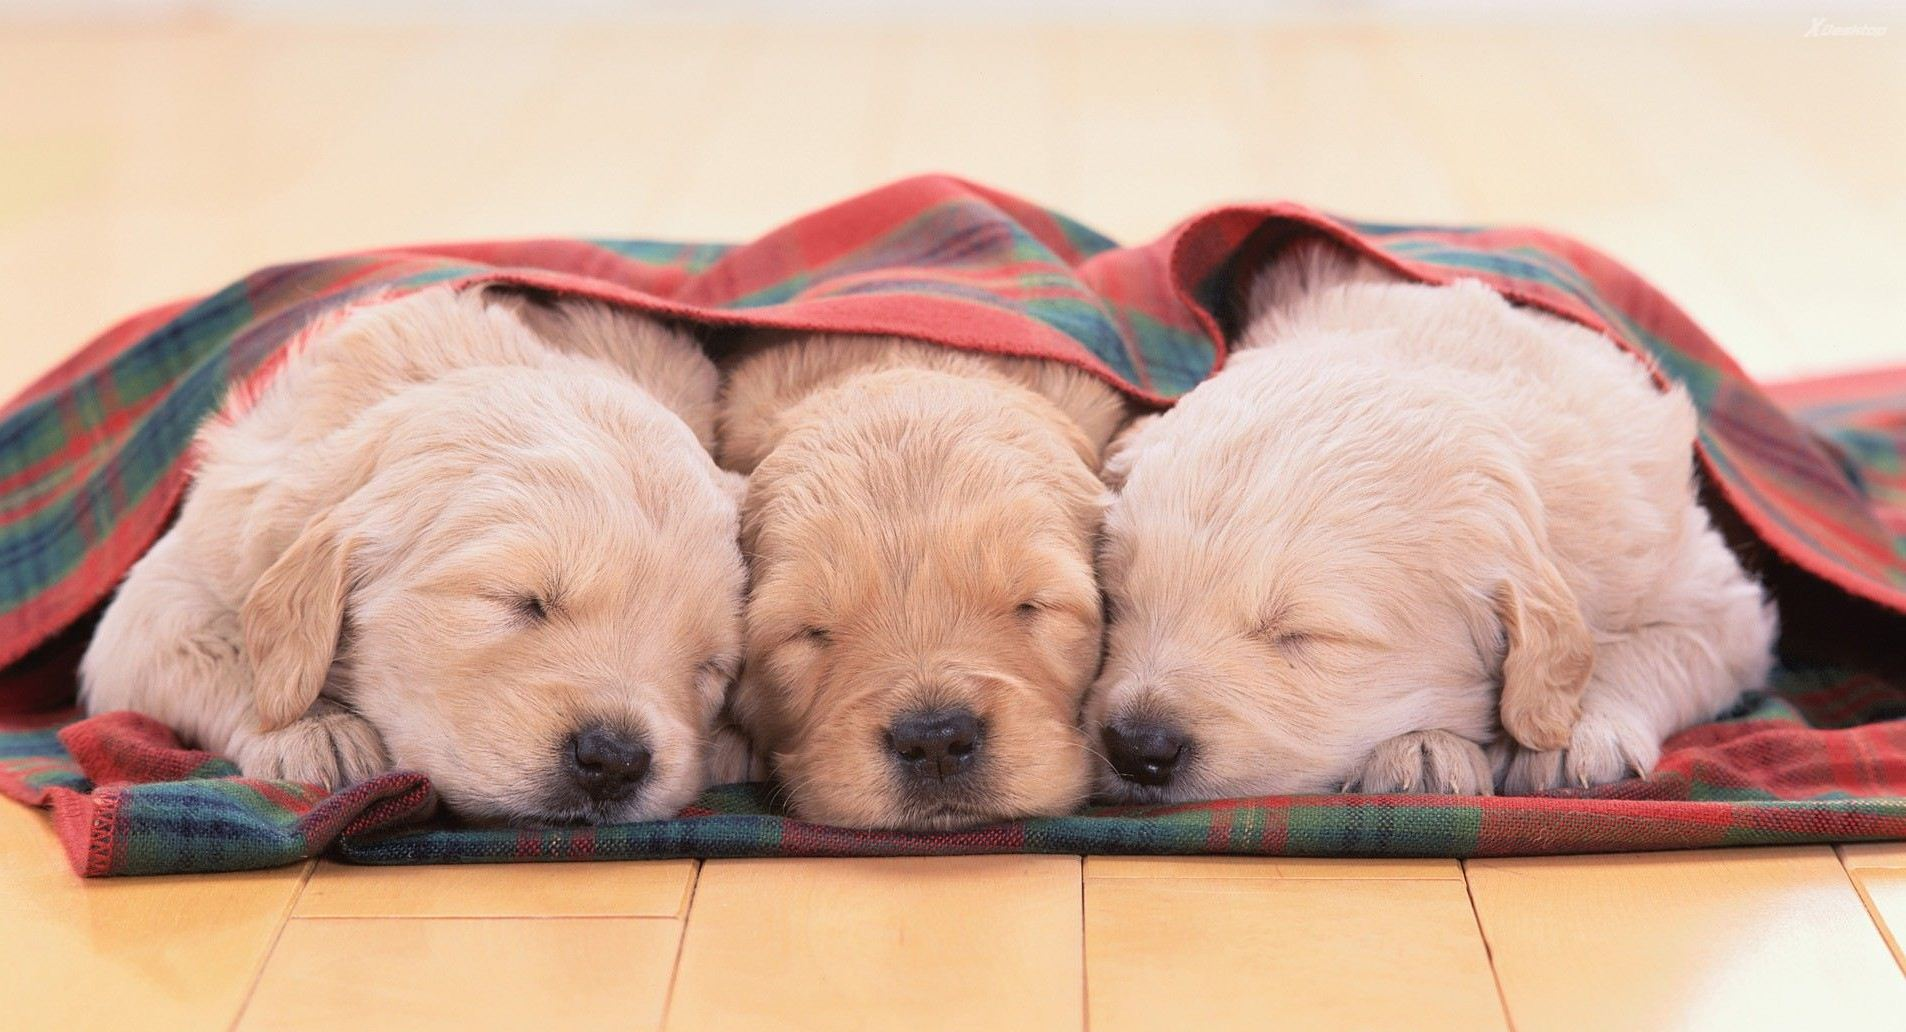 Cutest Sleeping Puppy Photos | Pets World